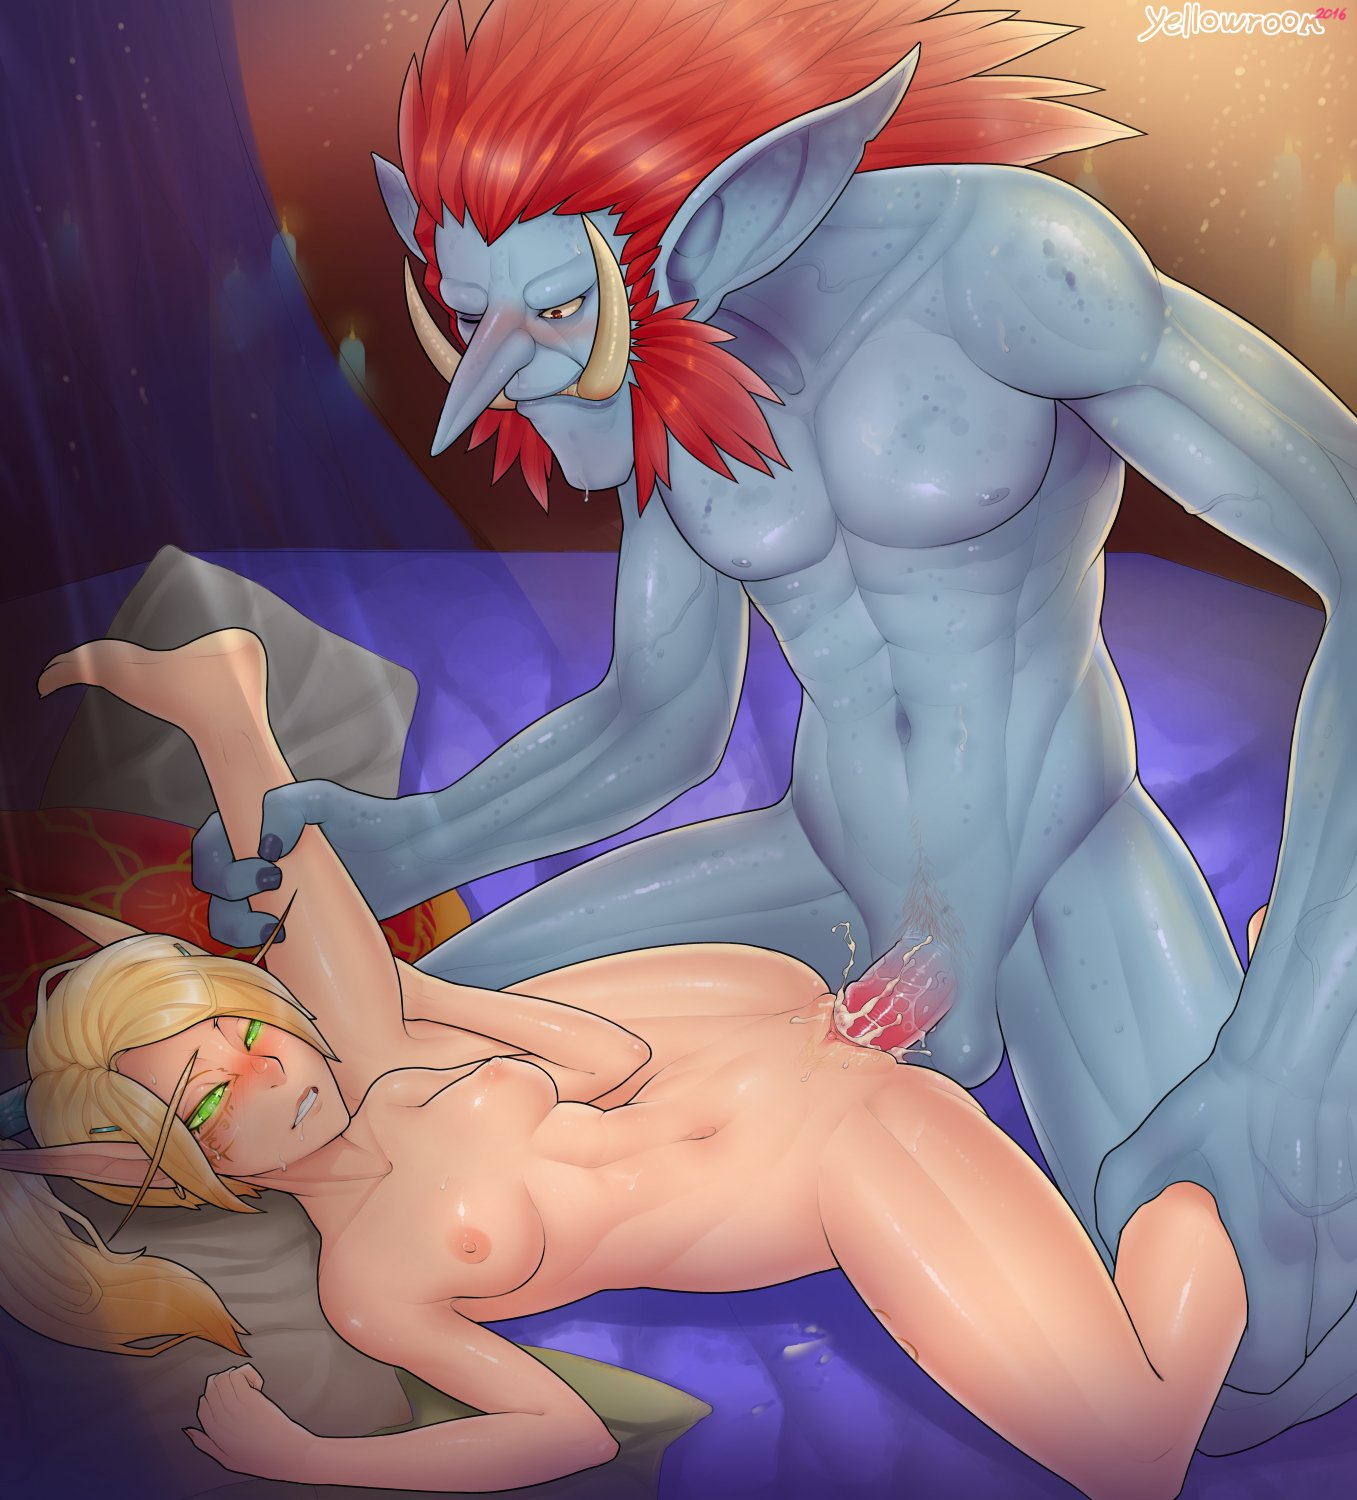 Elf rule 34 porn sex scene